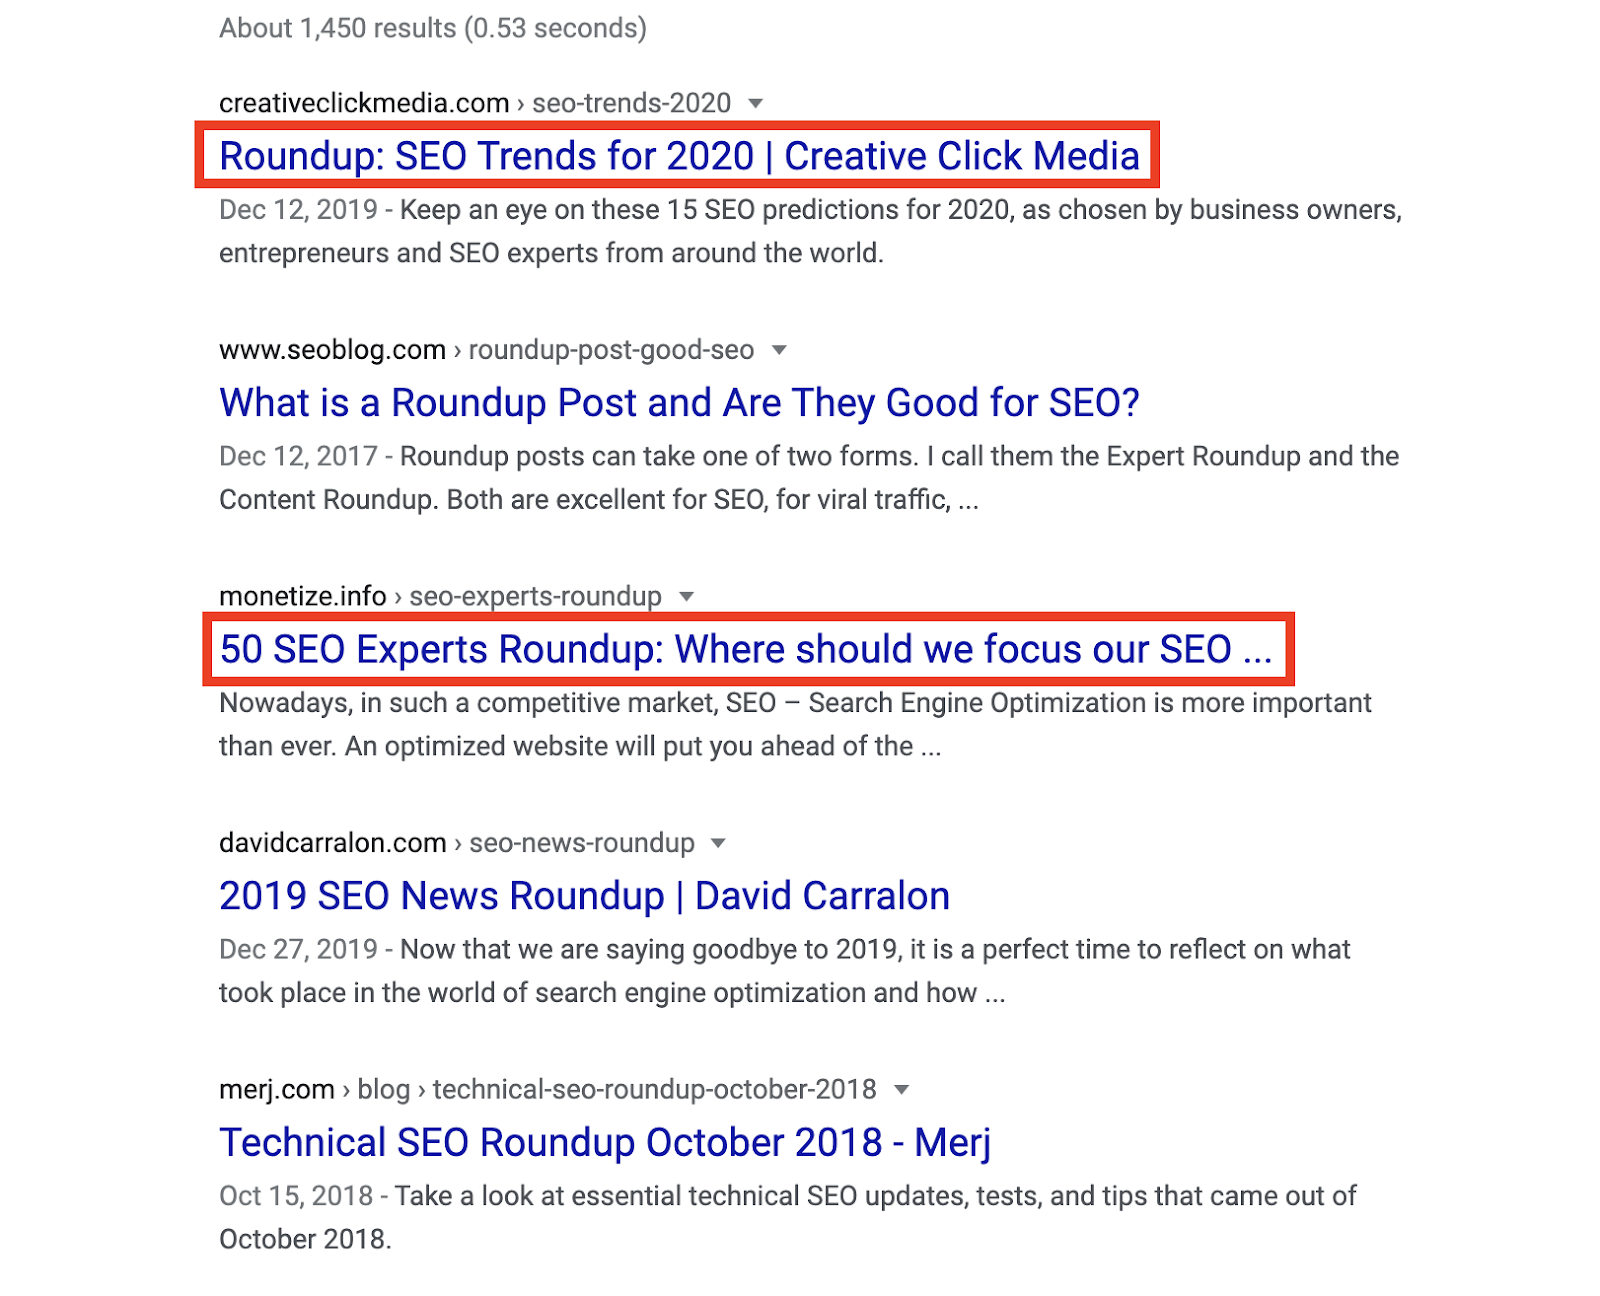 Expert Roundups Among Search Results